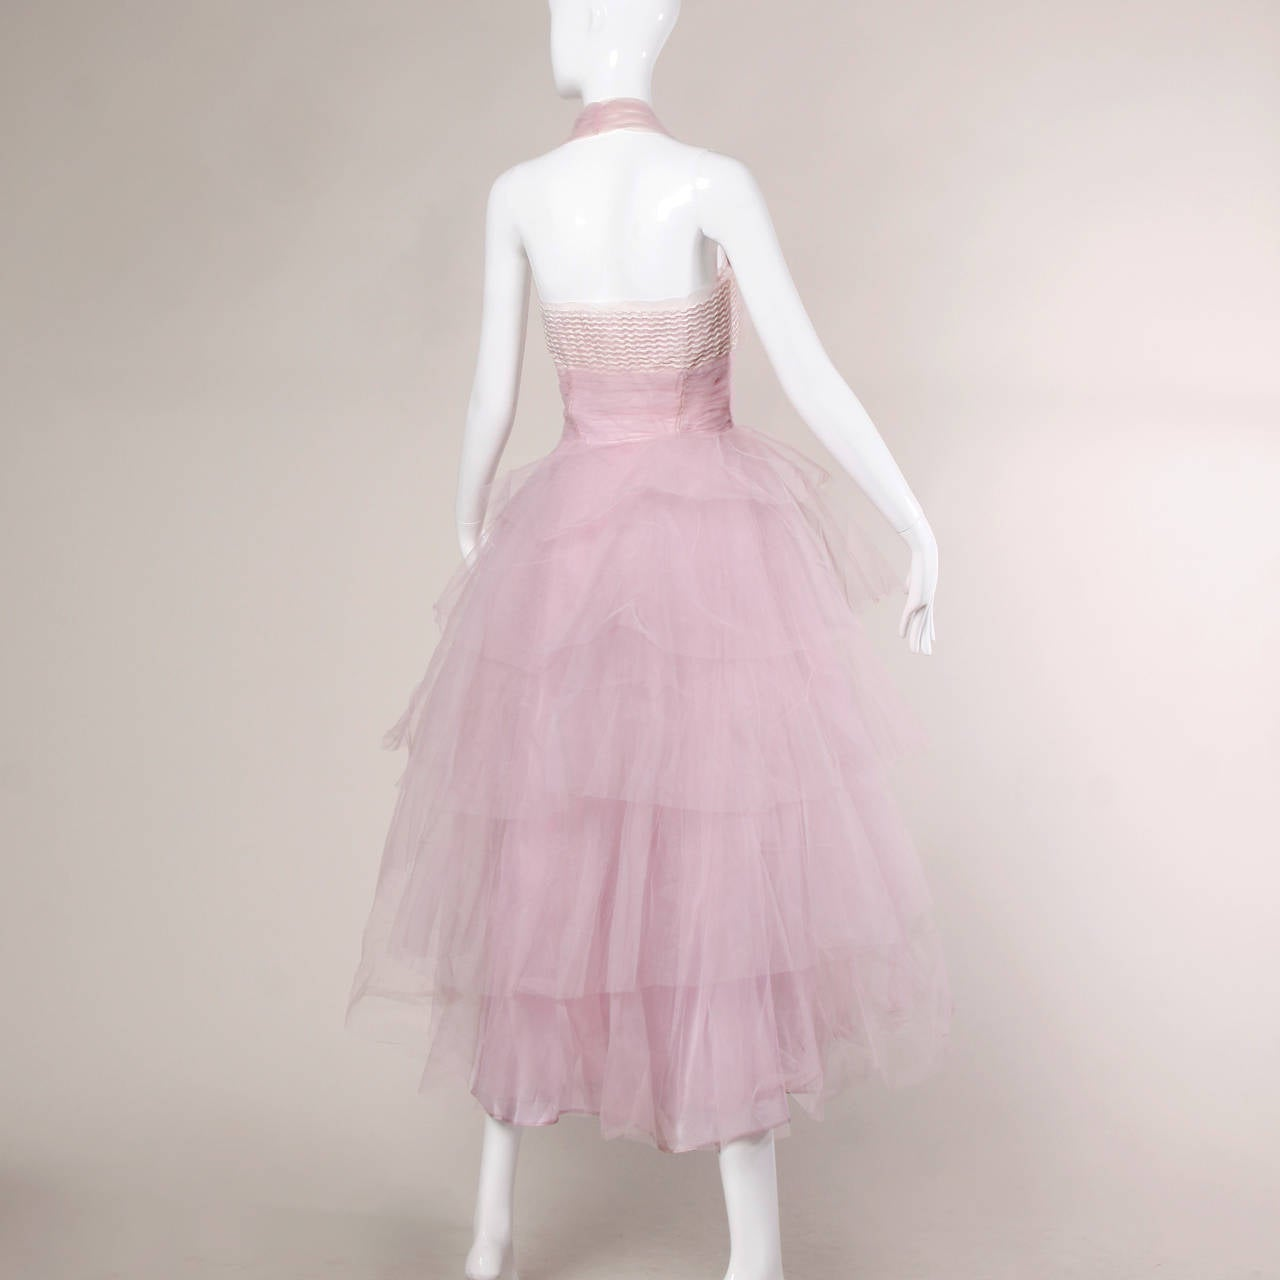 1950s Vintage Tiered Tulle Formal Cupcake Dress 5